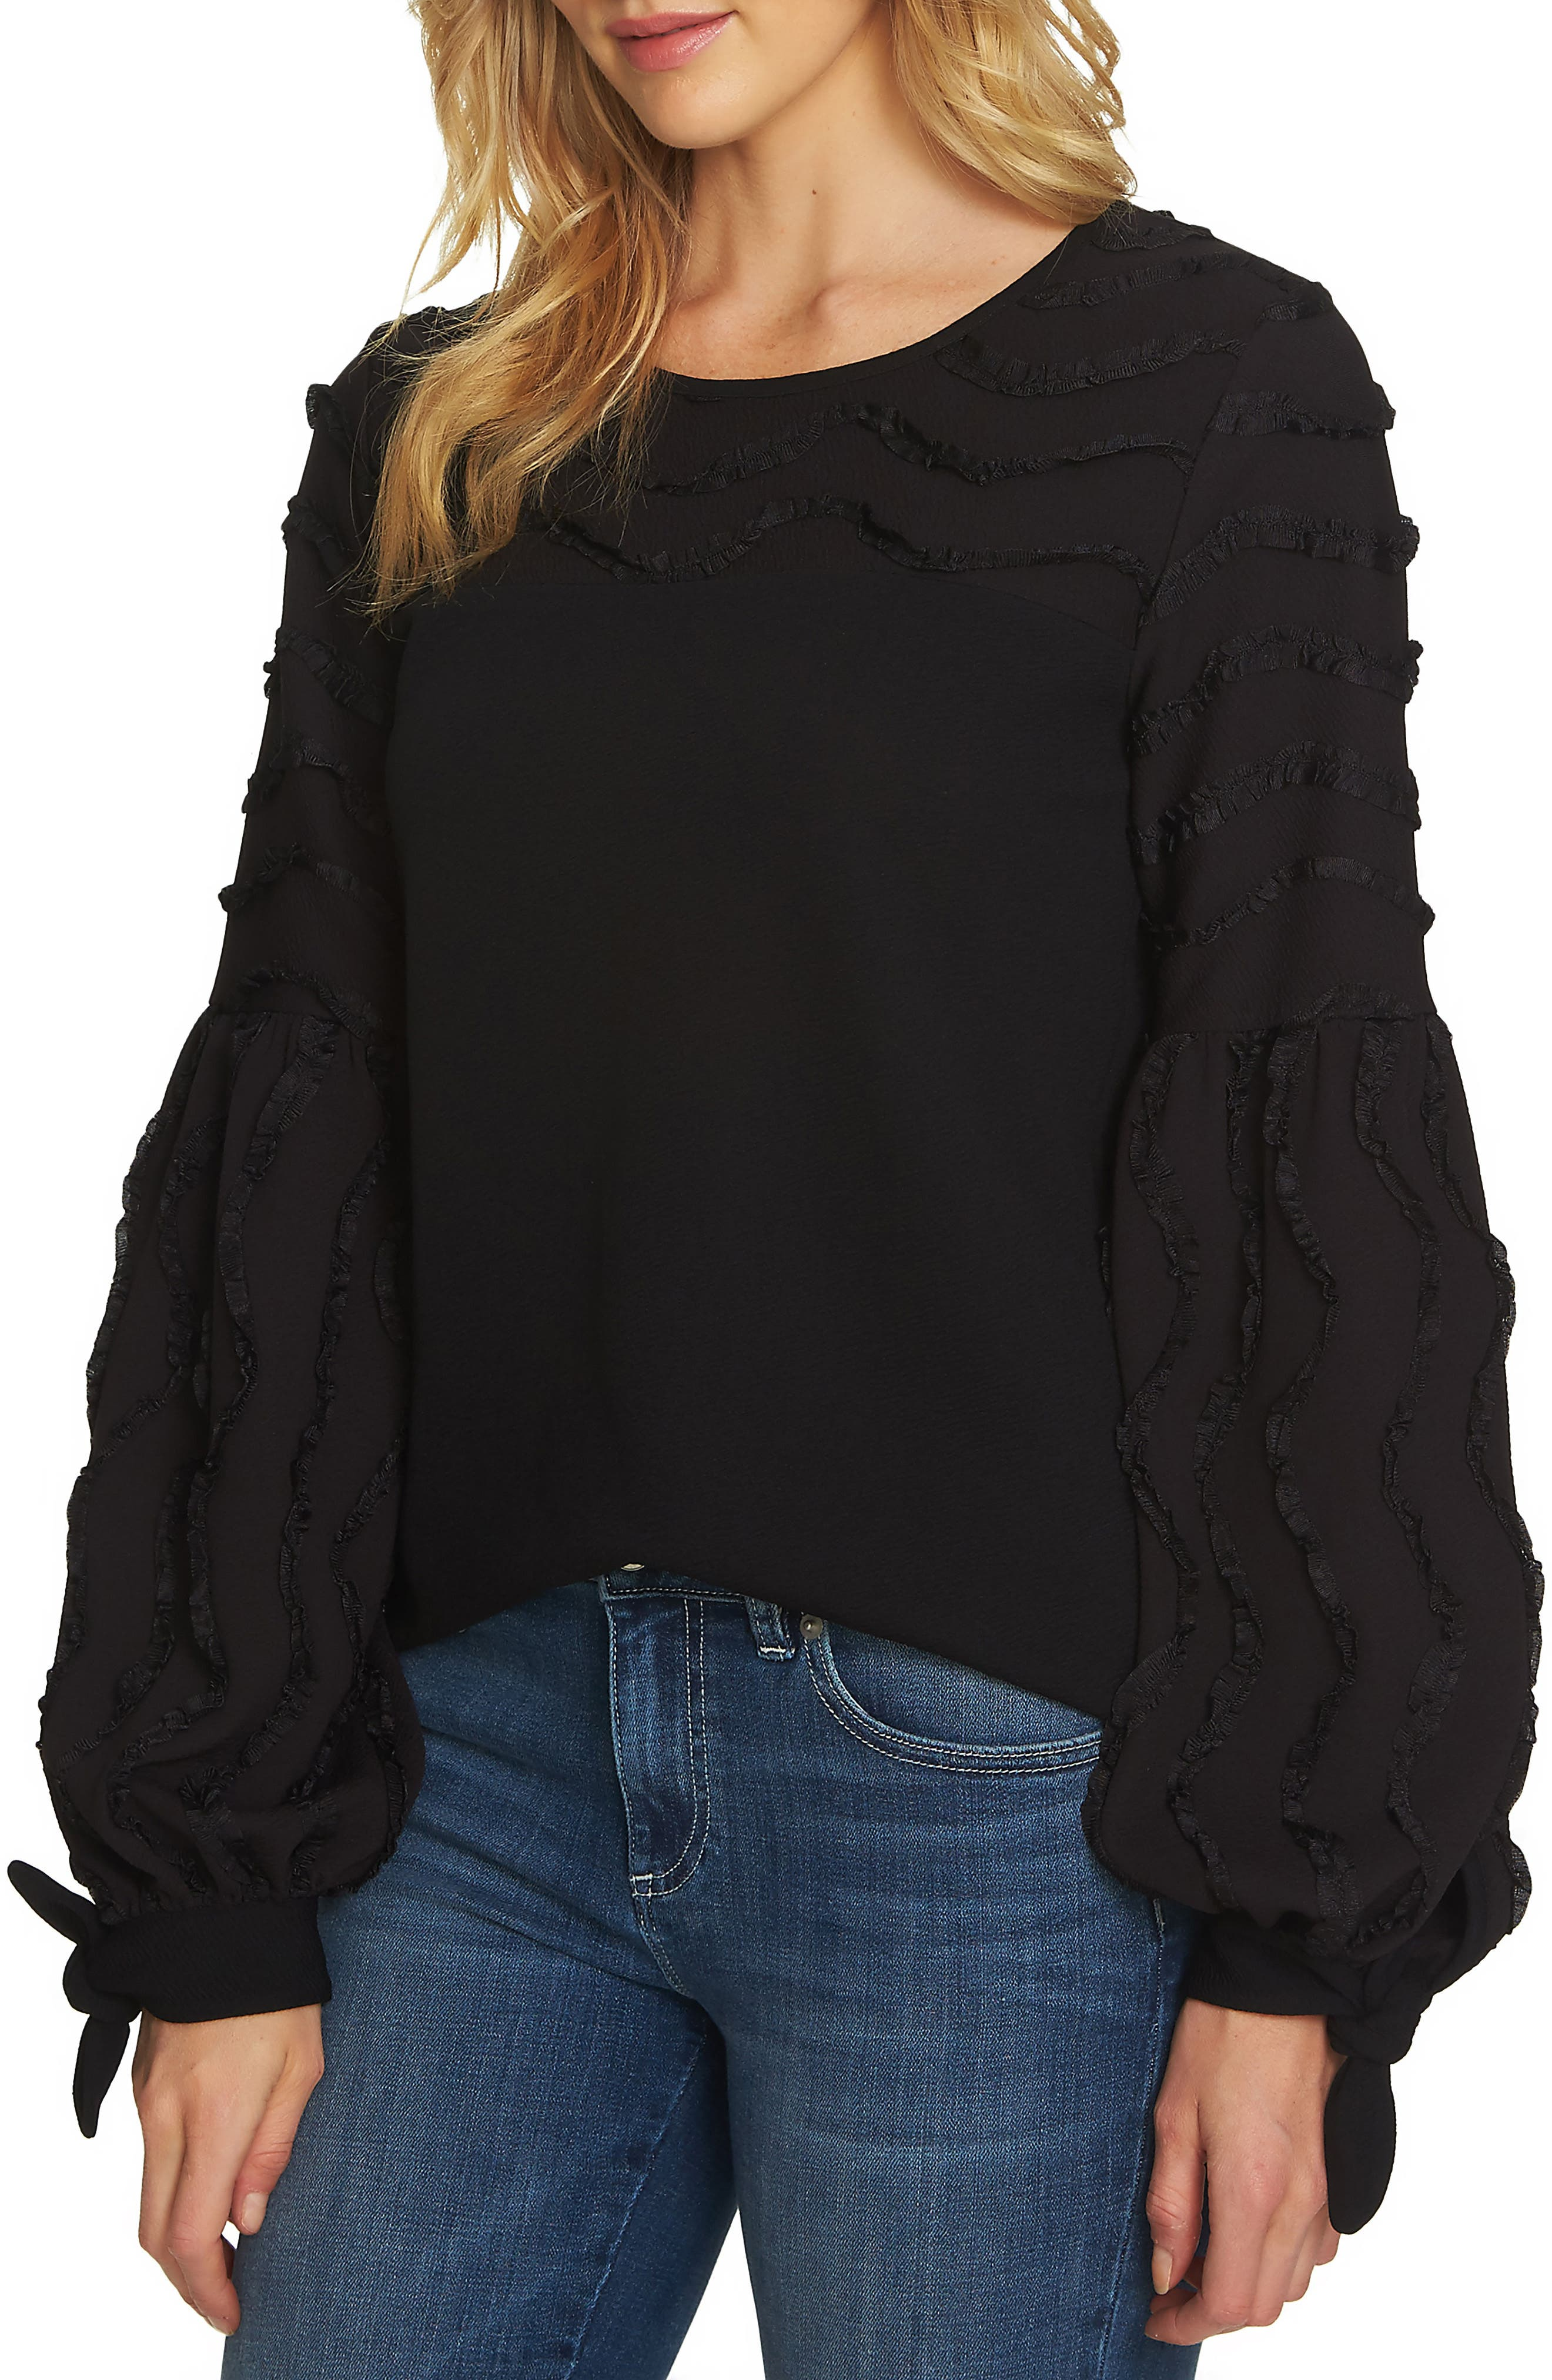 Balloon Sleeve Textured Knit Top,                         Main,                         color, 006